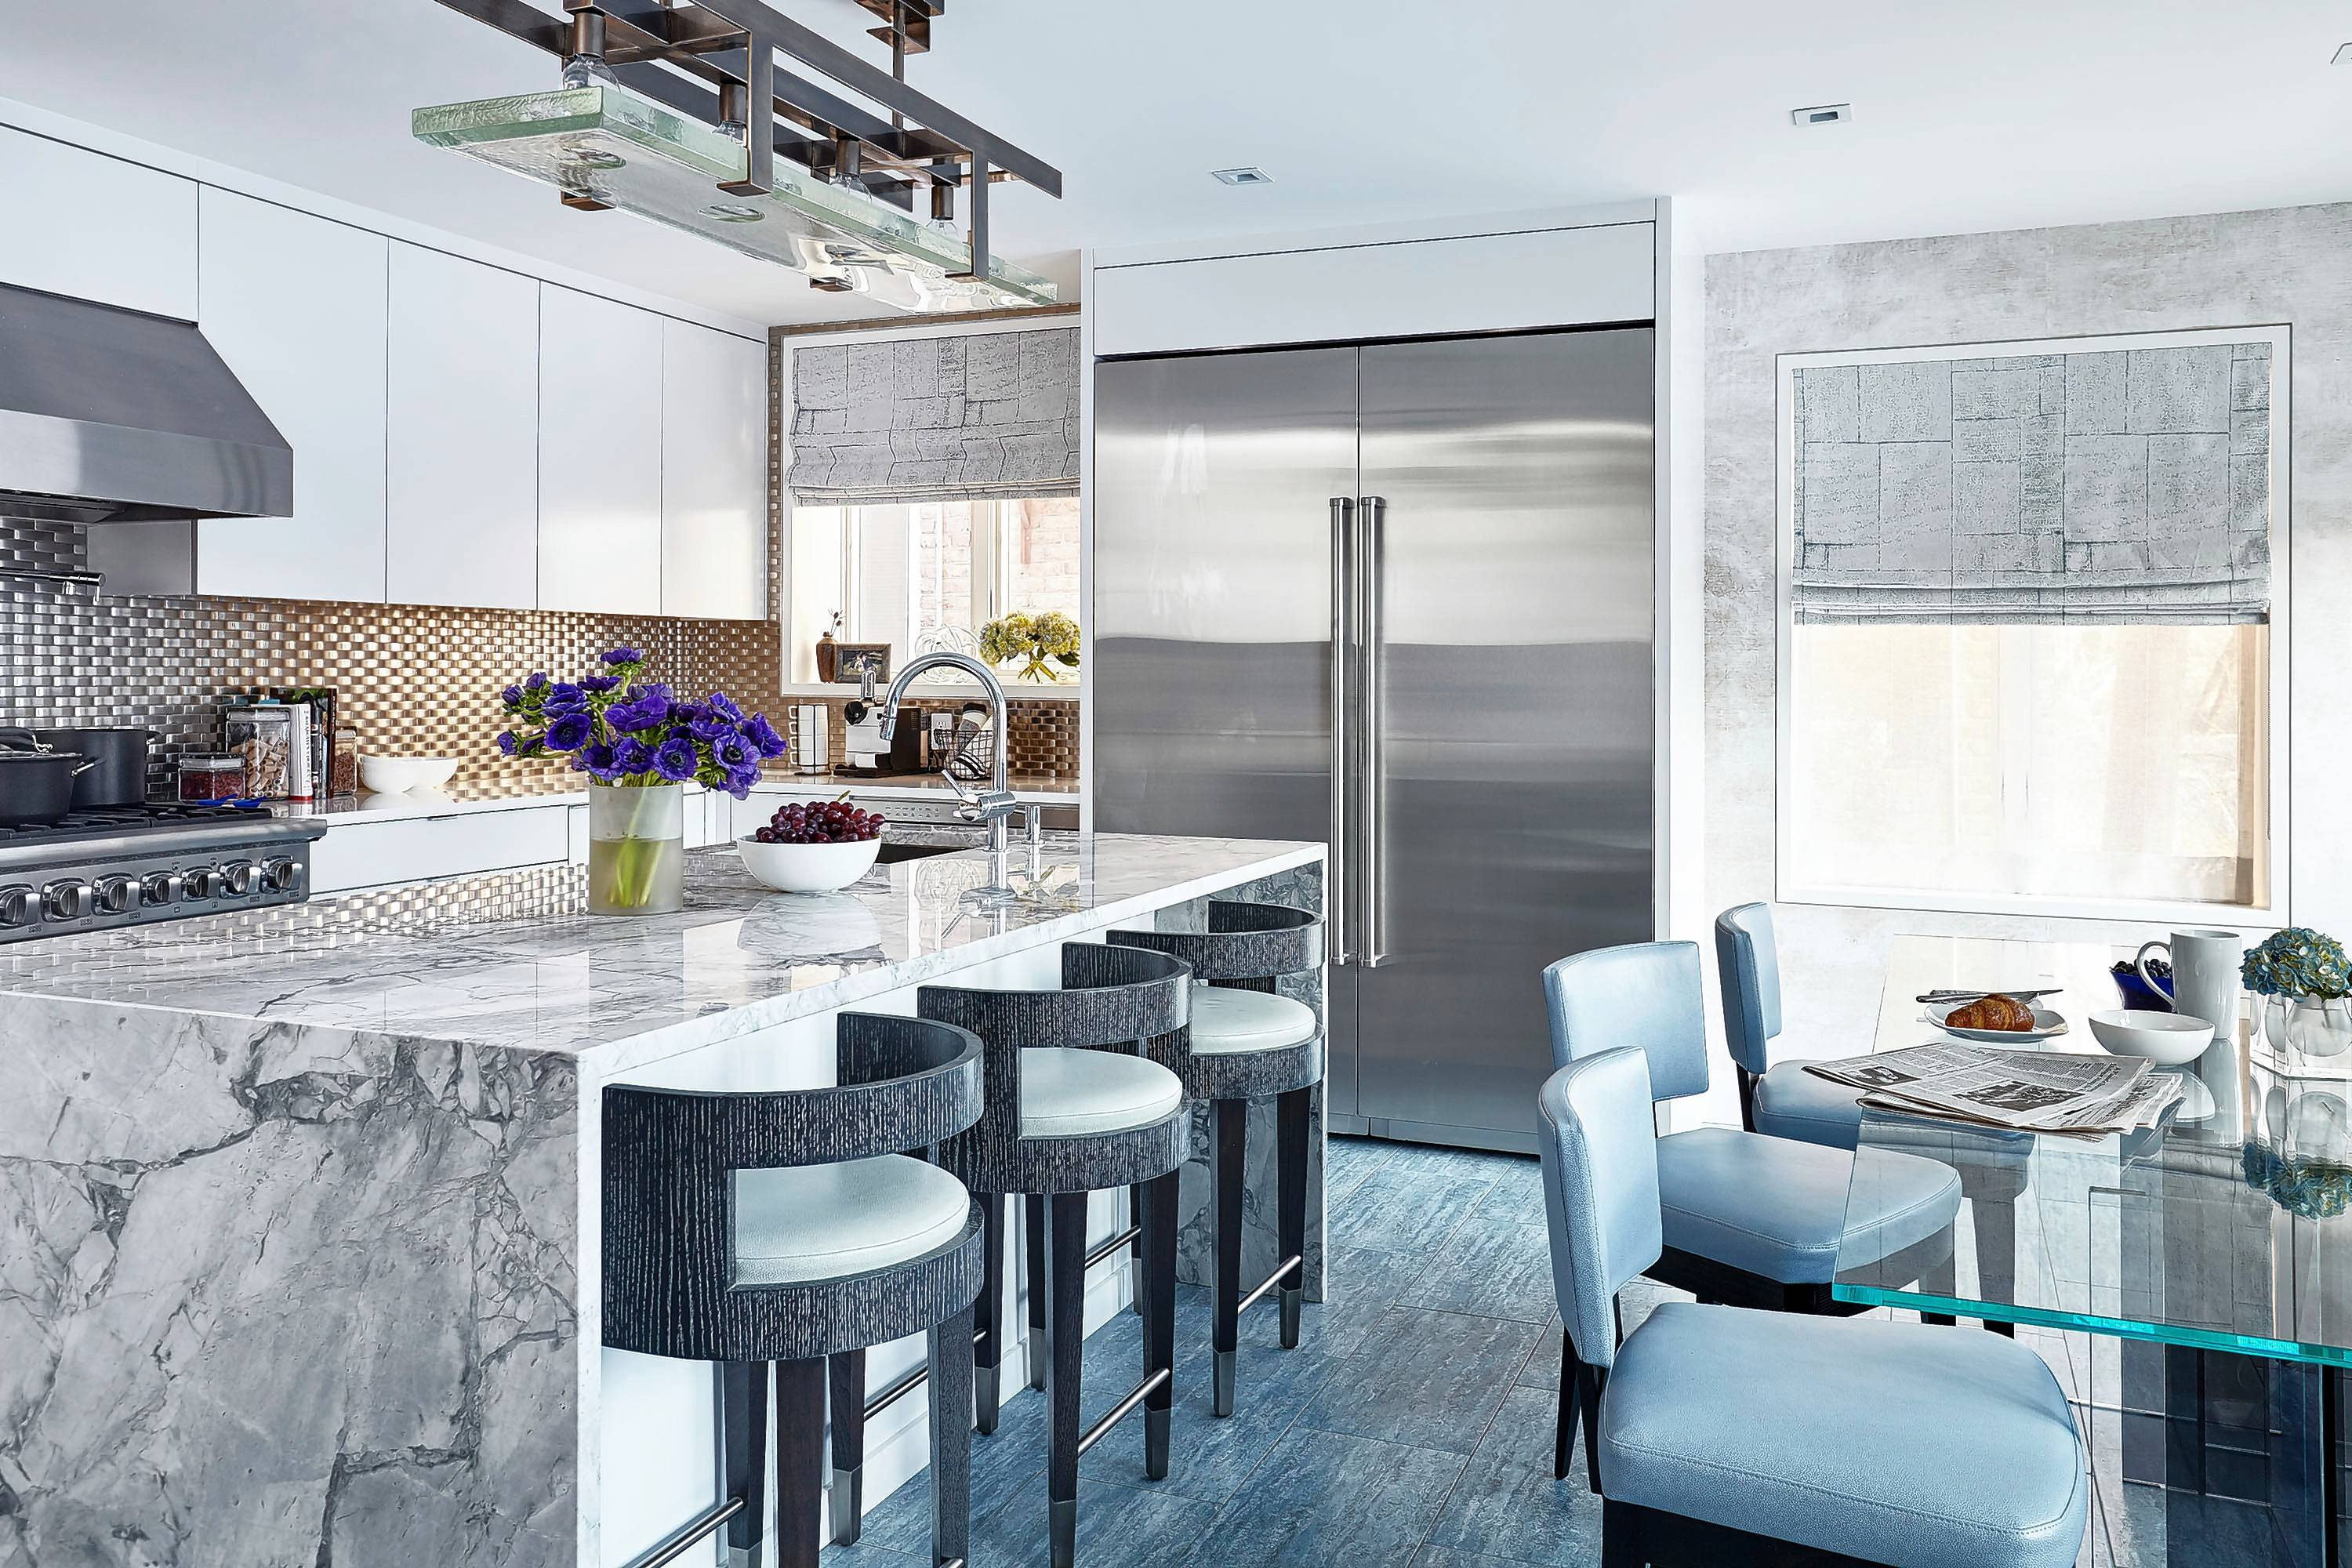 Although kitchen backsplashes are often made of porcelain or ceramic tile, interior designer Jenny Kirschner used stainless steel to give this open, airy kitchen a fresh, modern look.